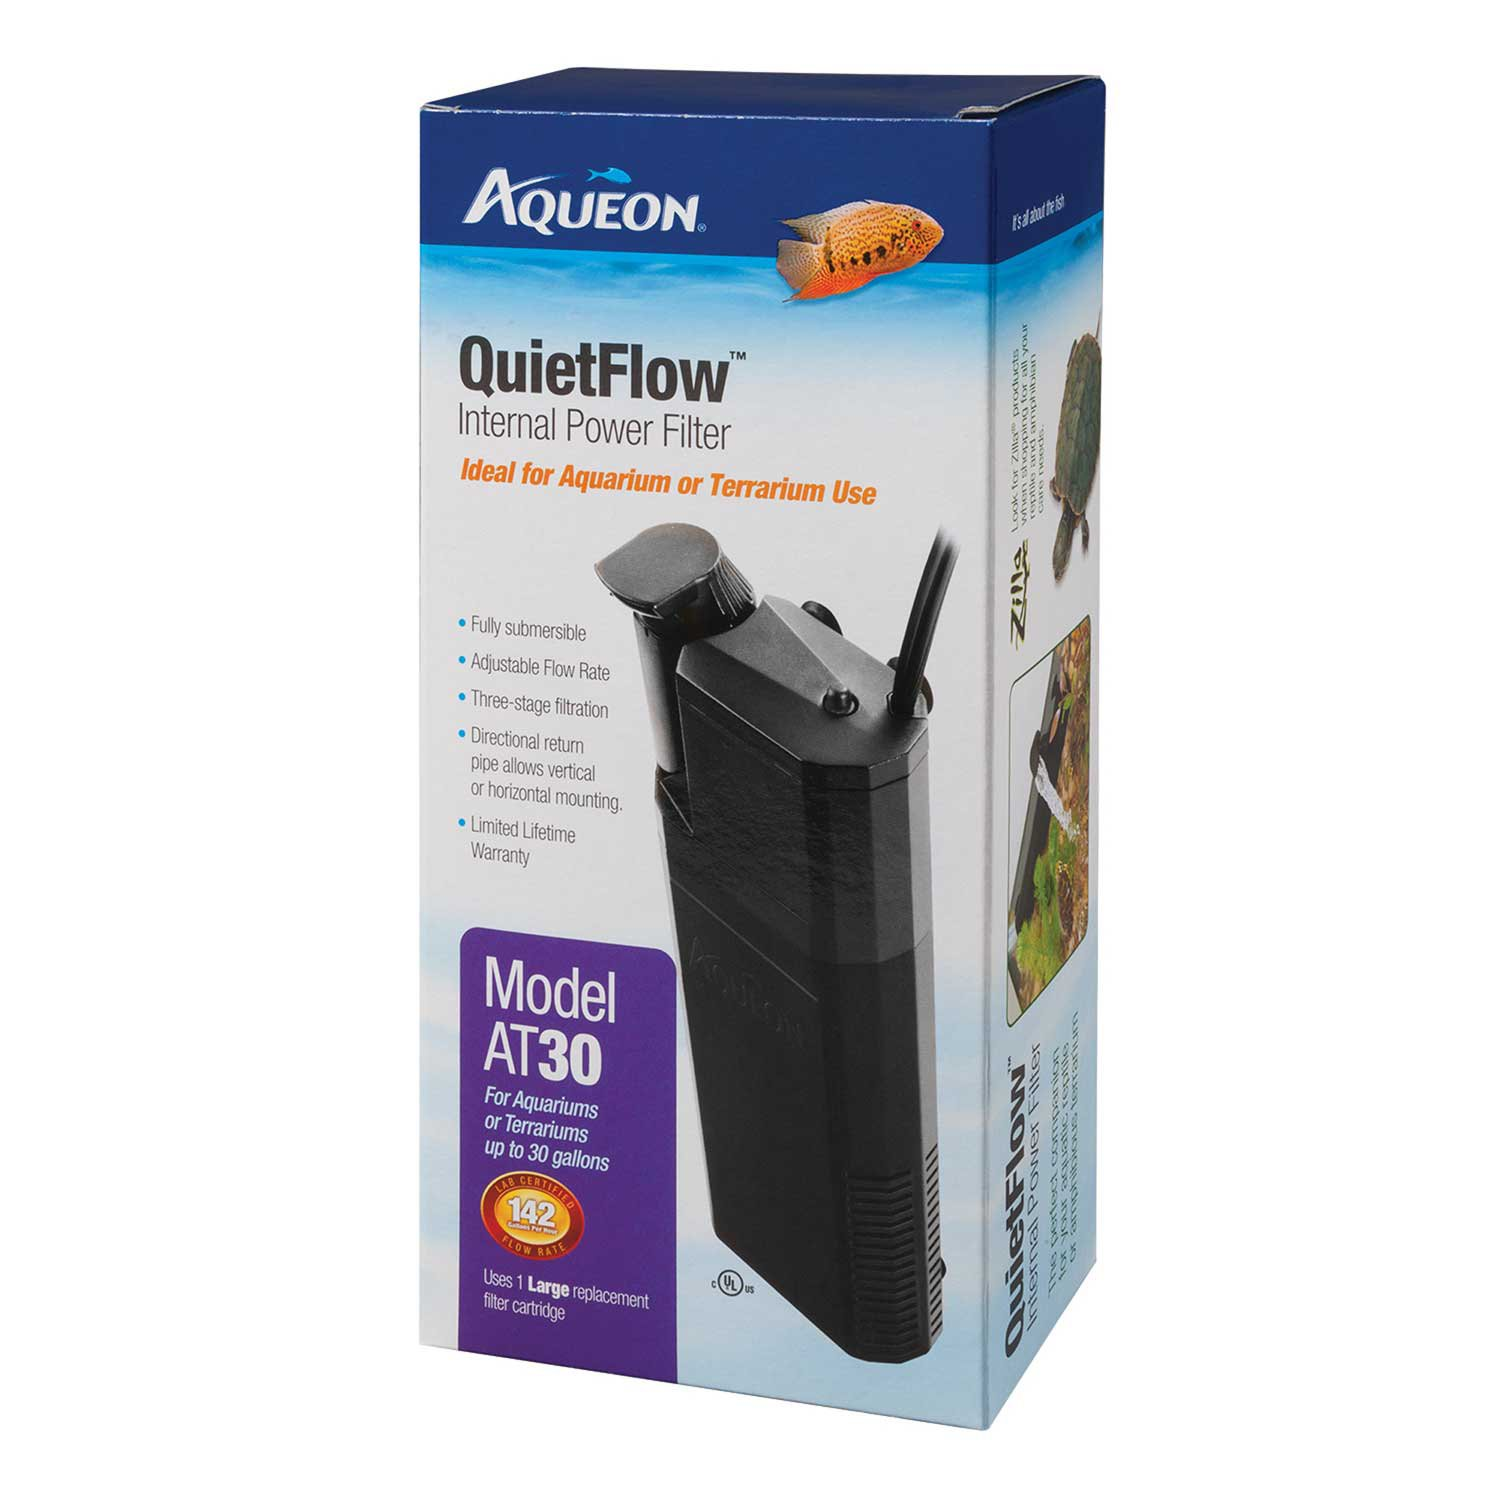 Aqueon quietflow 30 internal power filter petco for Quiet fish tank filter